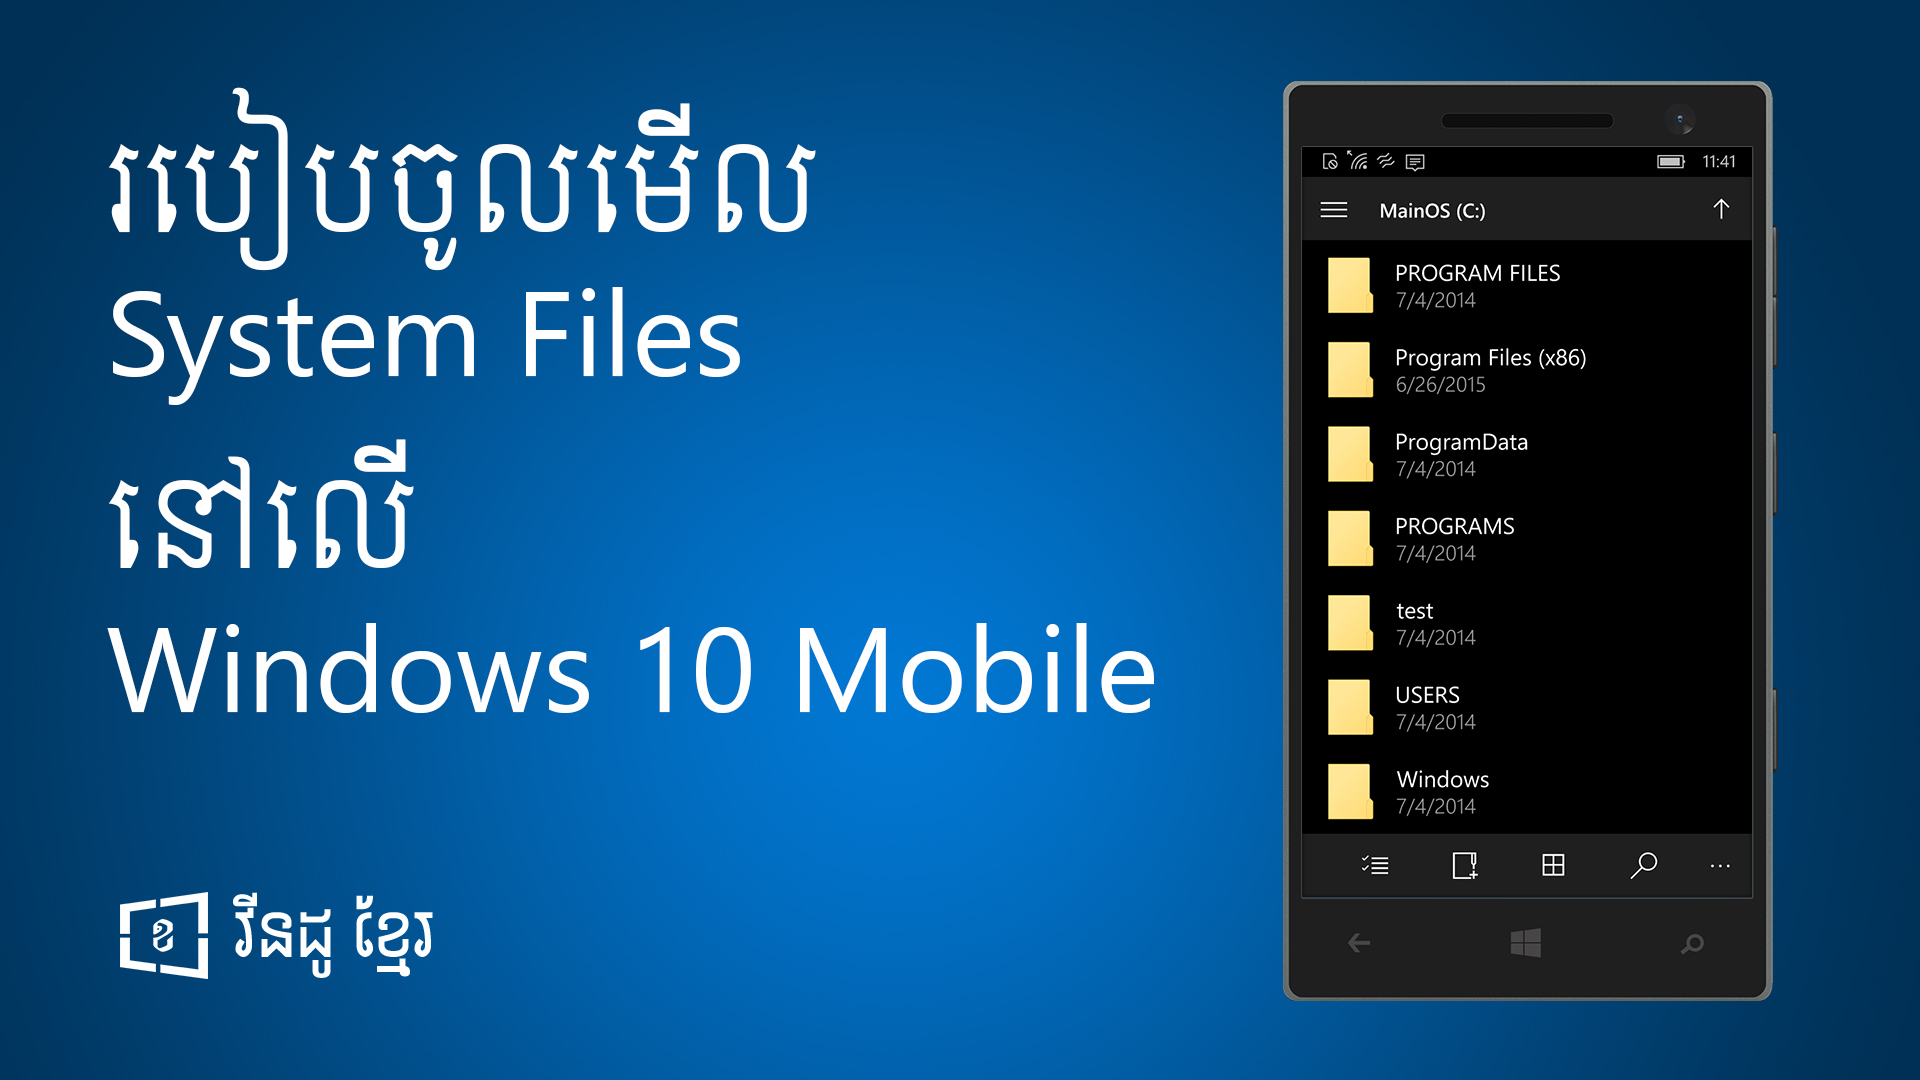 how-to-access-system-files-on-windows-10-mobile